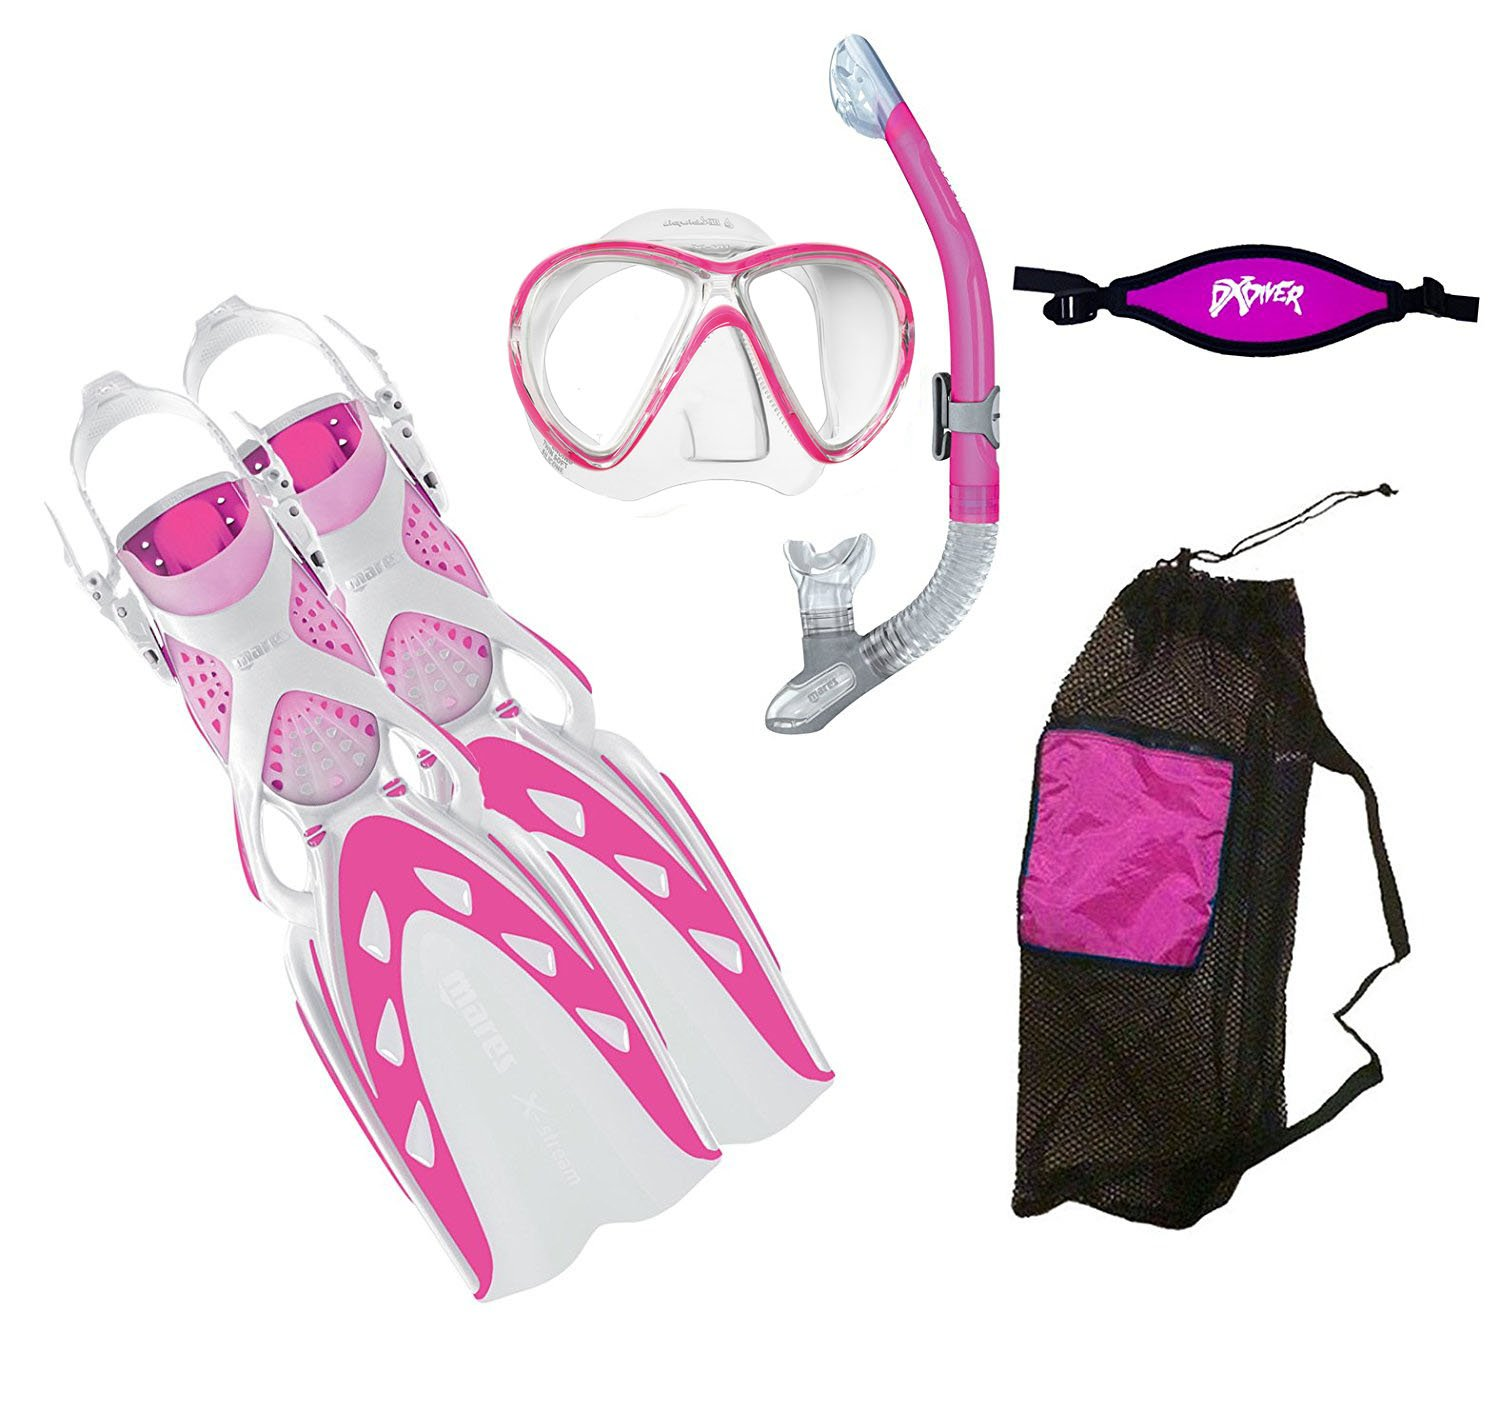 MARES X-Stream Fins X-Vision LiquidSkin Mask Ergo Dry Snorkel DXDiver Mask Strap Mesh Gear Bag Snorkeling Scuba Diving Size SM, Pink by Mares